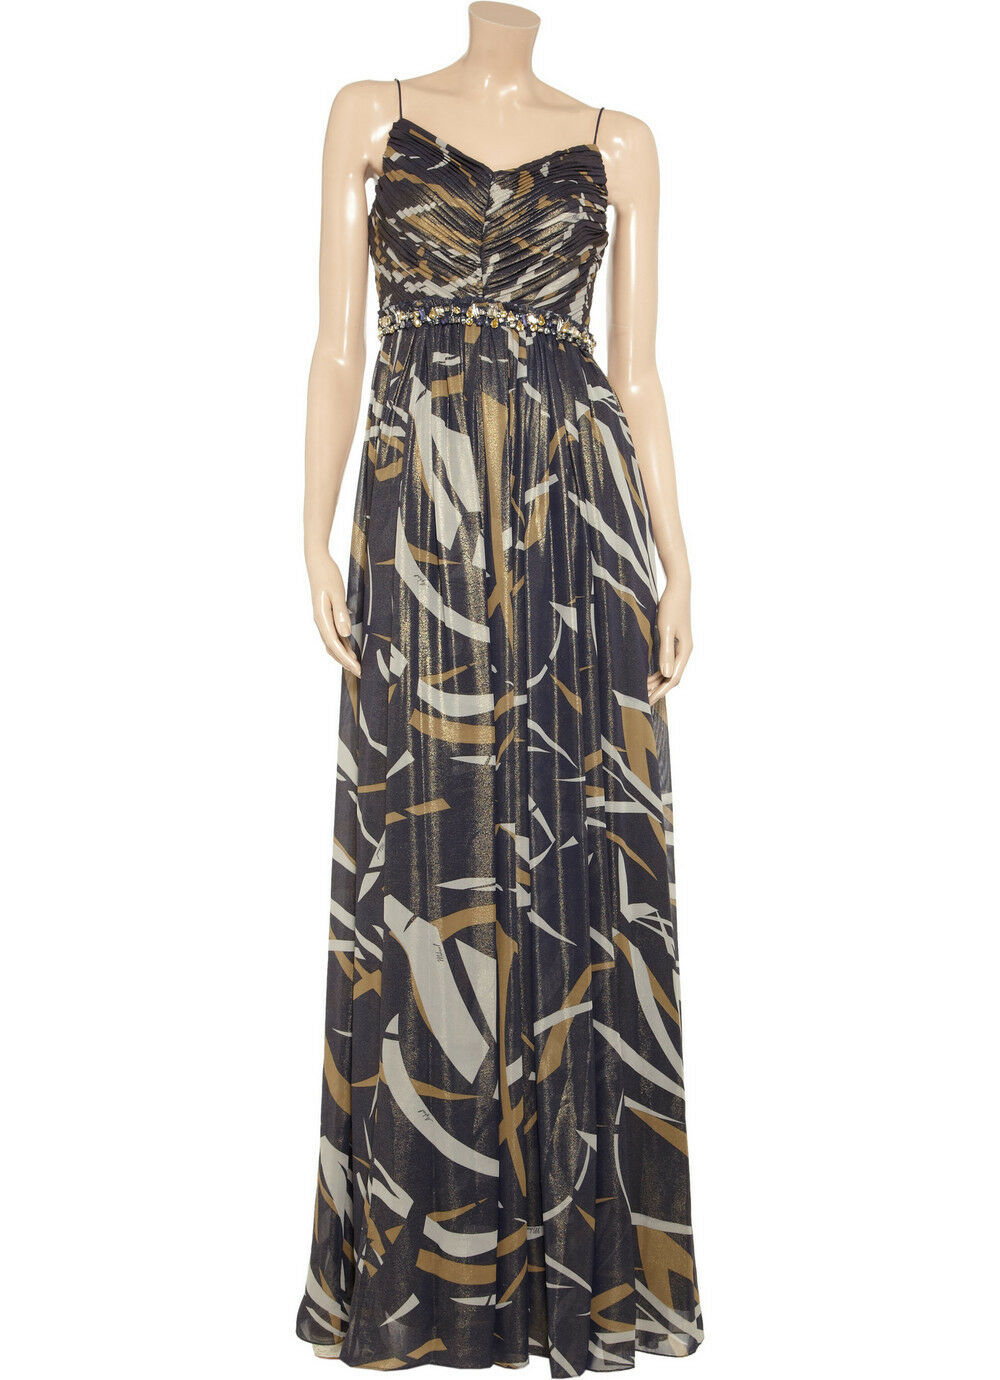 MIKAEL AGHAL WOMEN'S PRINTED GOWN EVENING DRESS SIZE 12 NWT